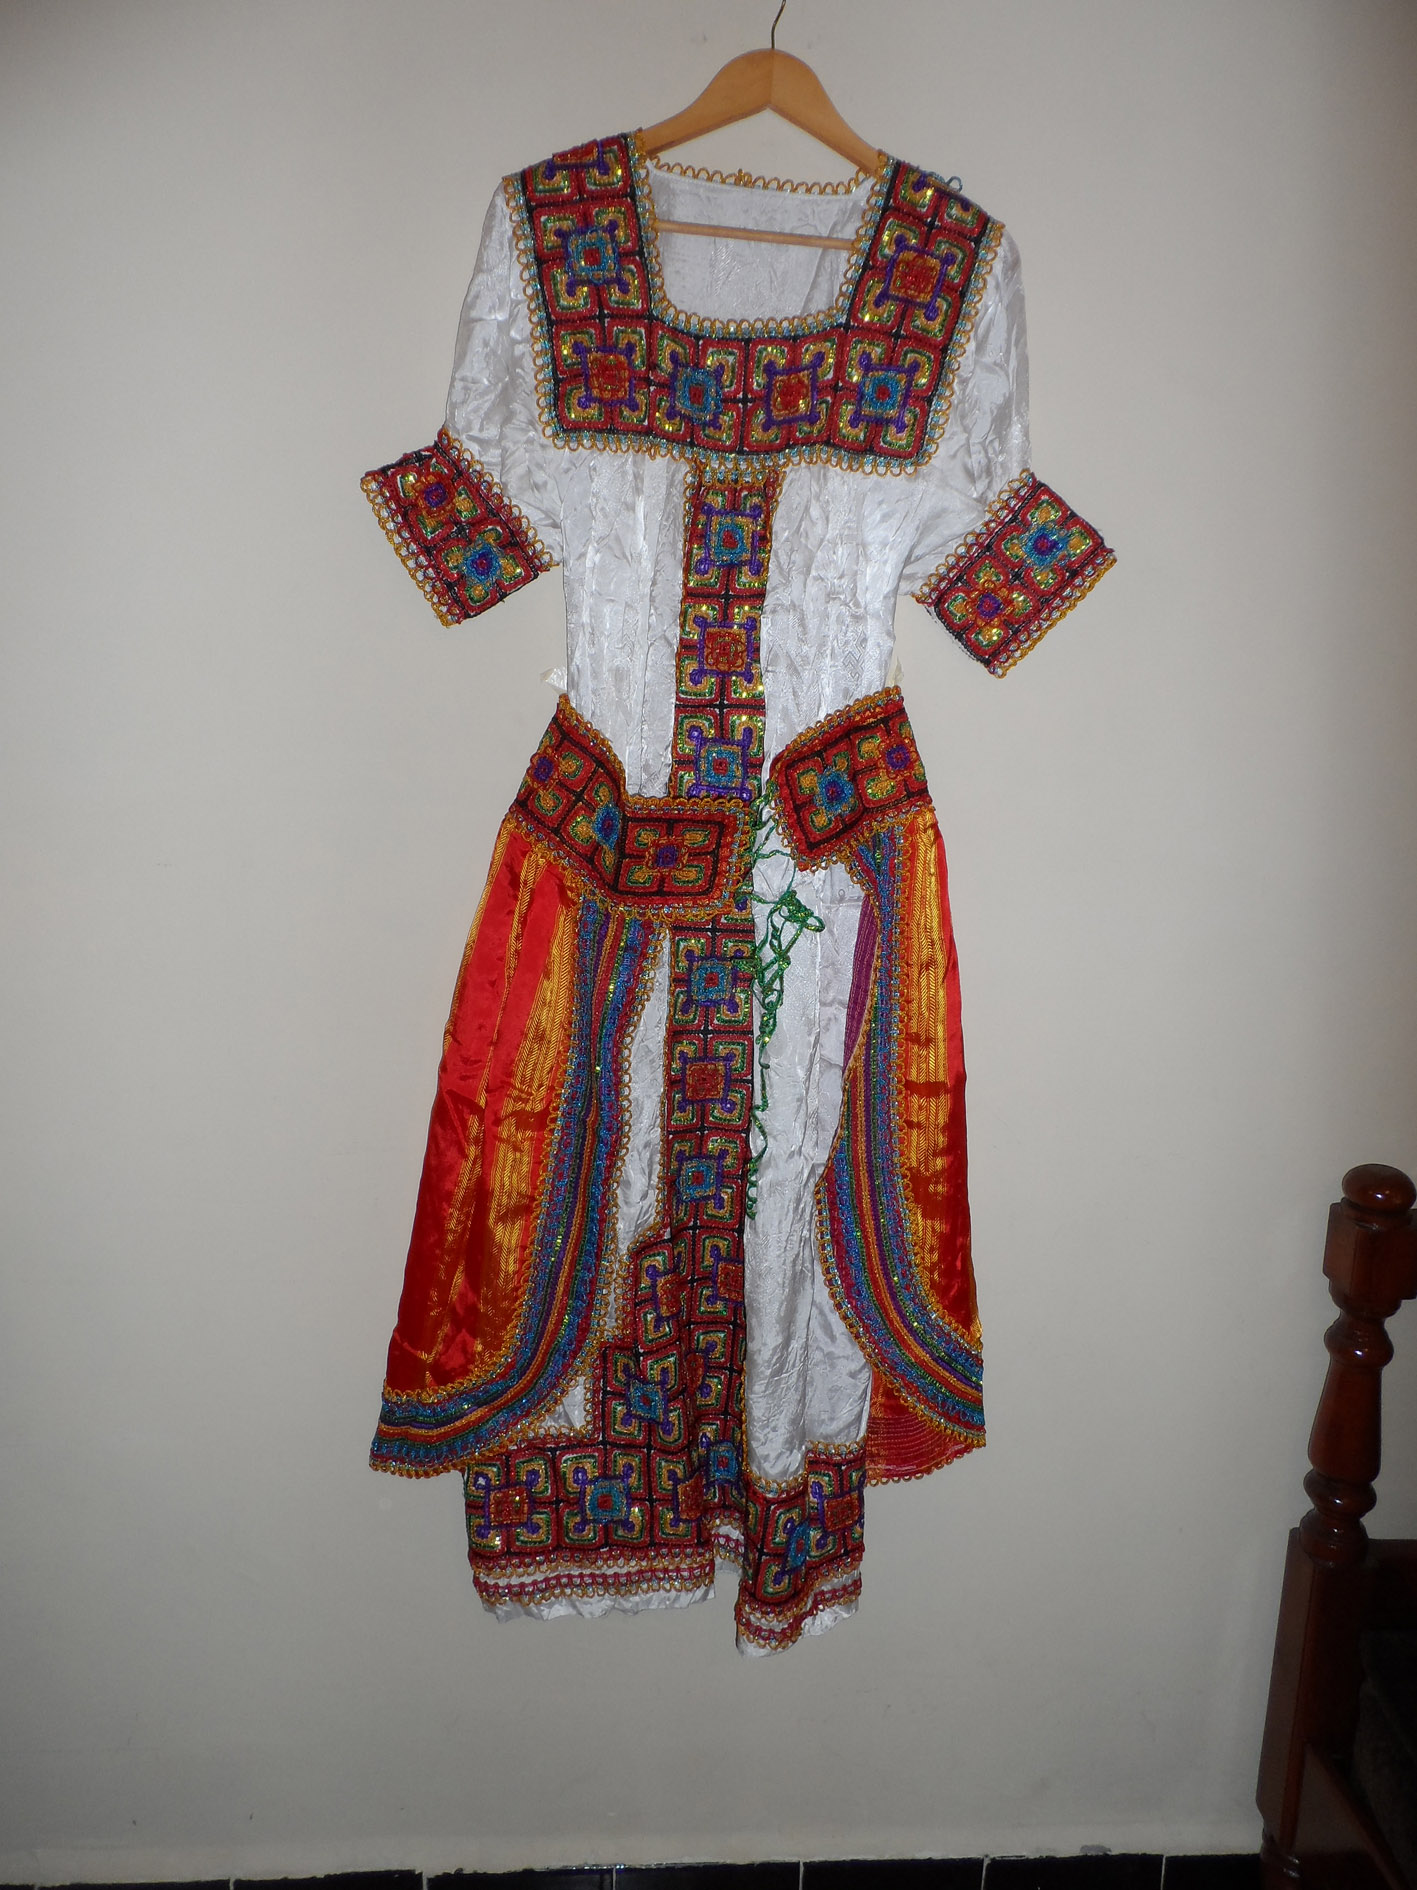 ROBE KABYLE ouedkniss